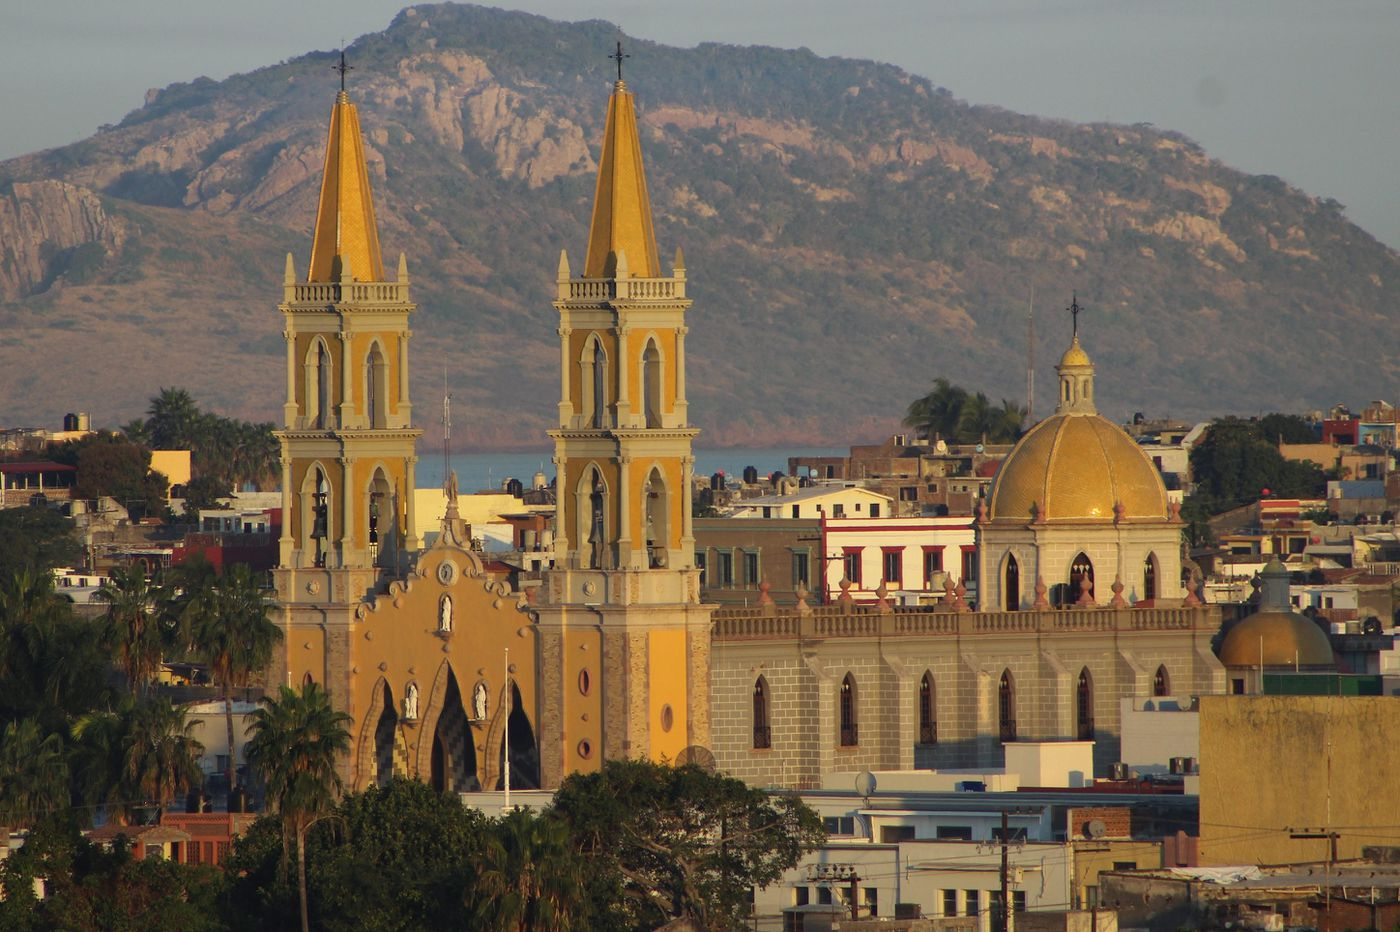 Nature and culture mix to make Mazatlan an undiscovered gem